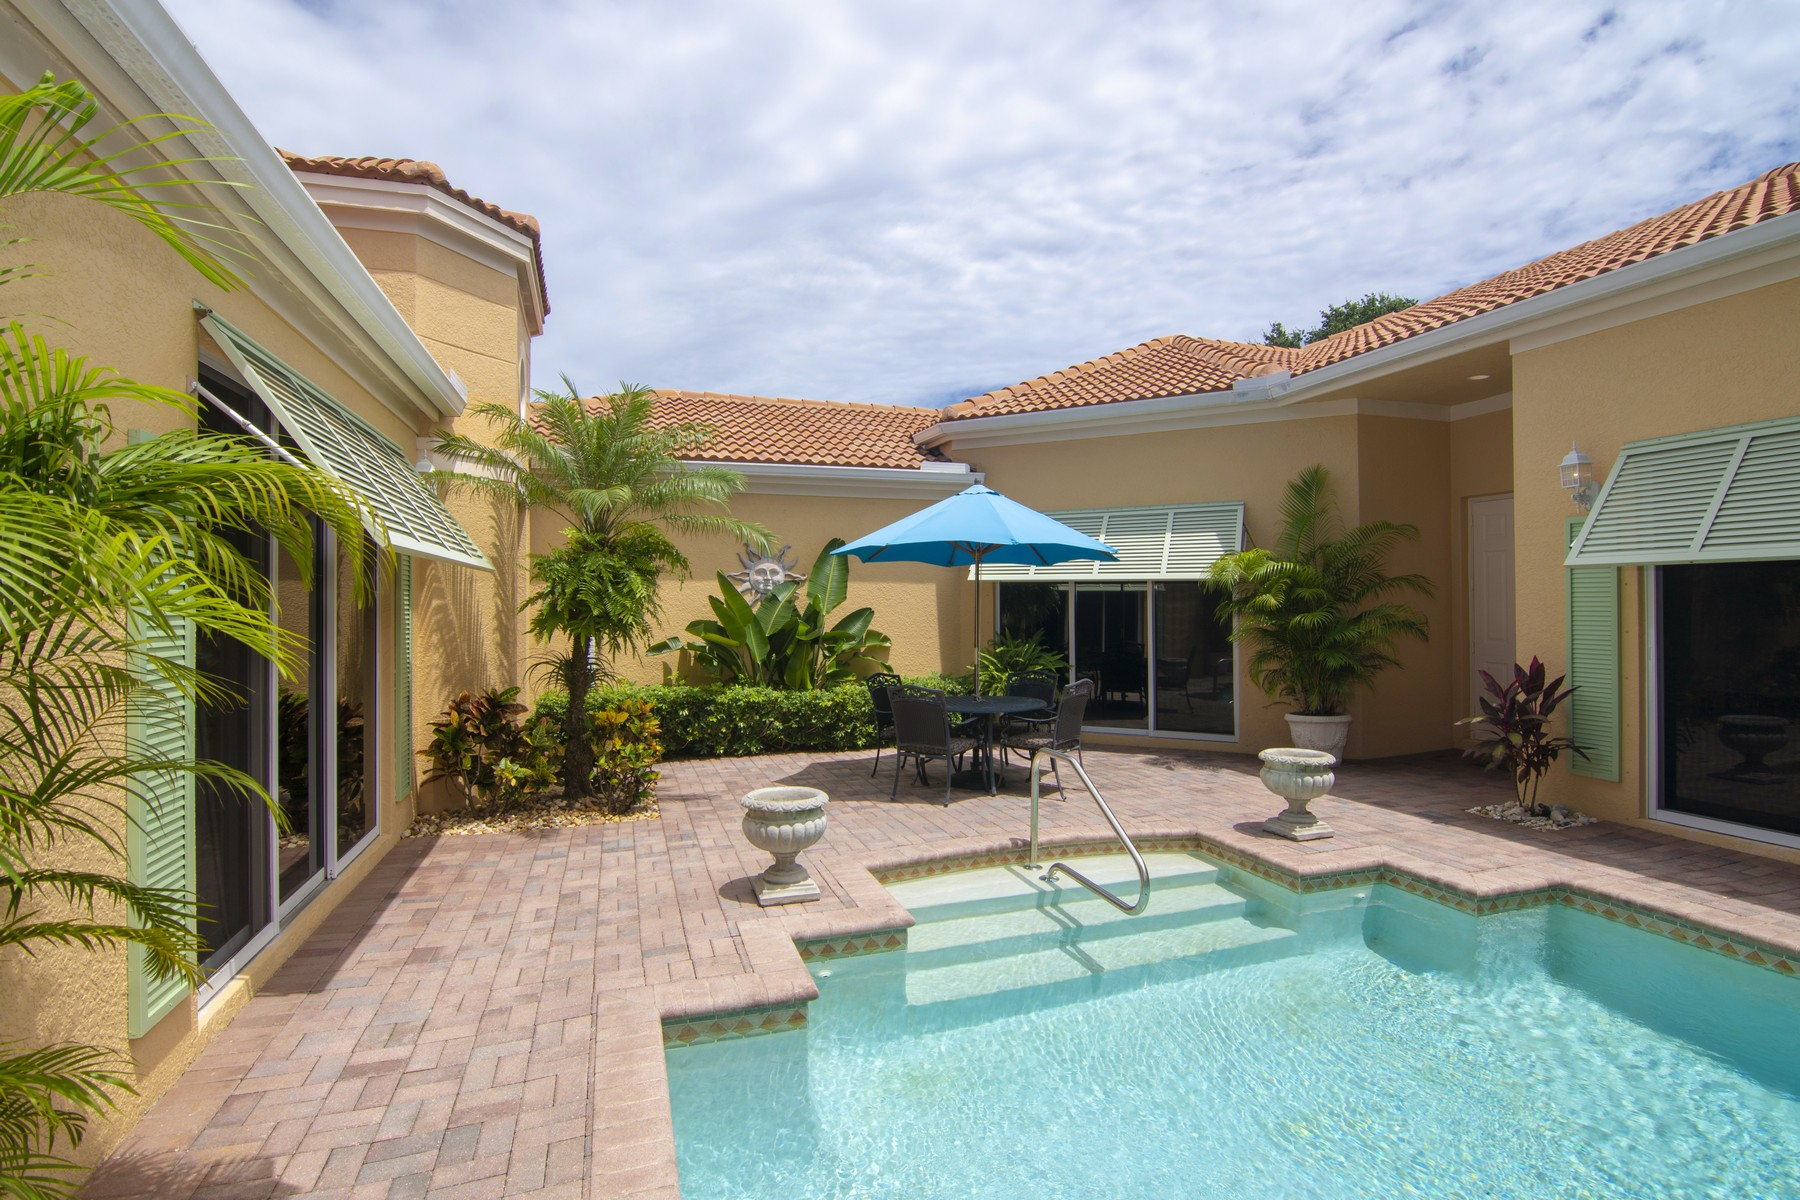 Additional photo for property listing at Courtyard Pool Home with Guest Cabana 9630 E Maiden Court Vero Beach, Florida 32963 United States